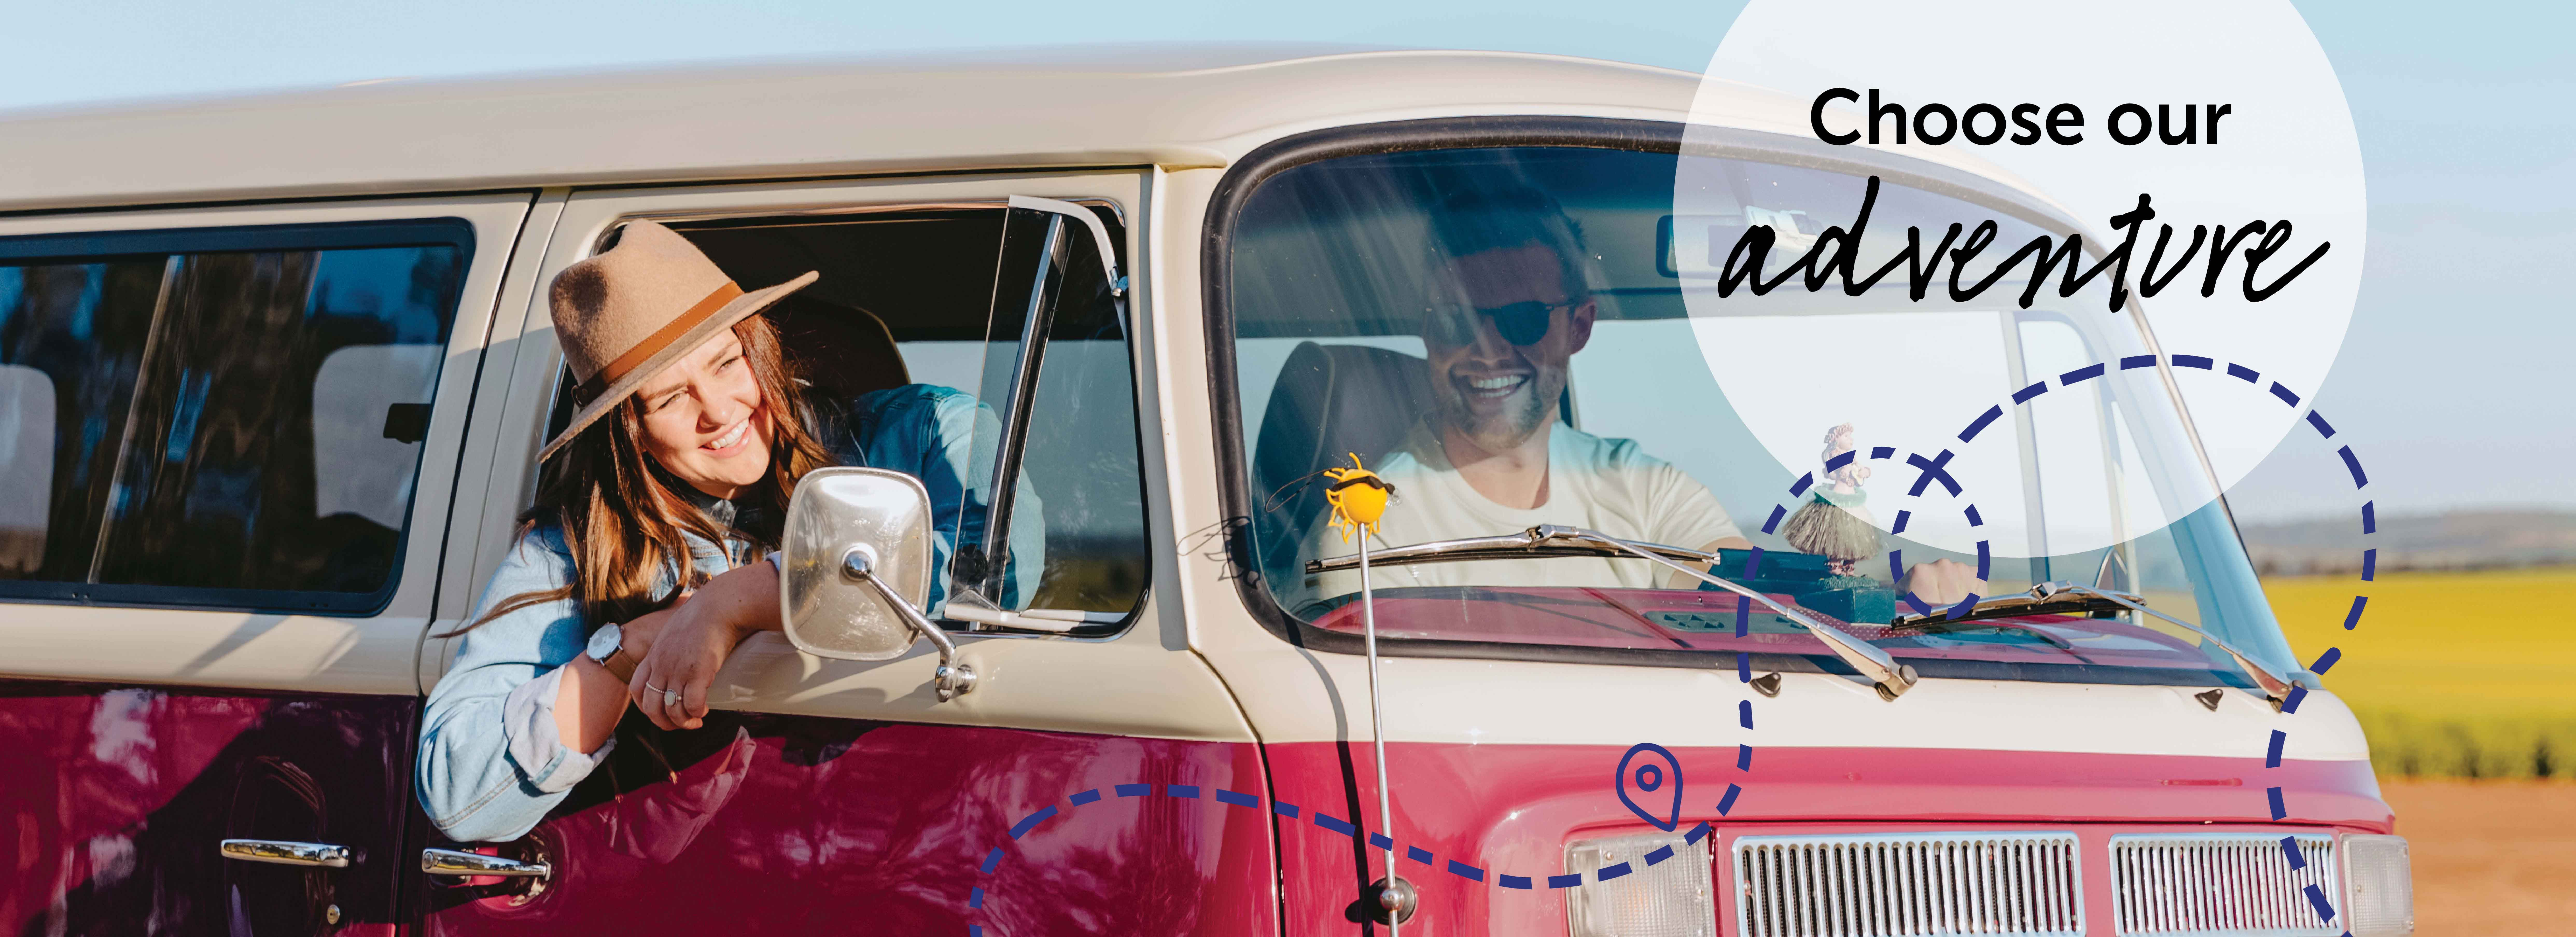 Girl in kombi looking out the window